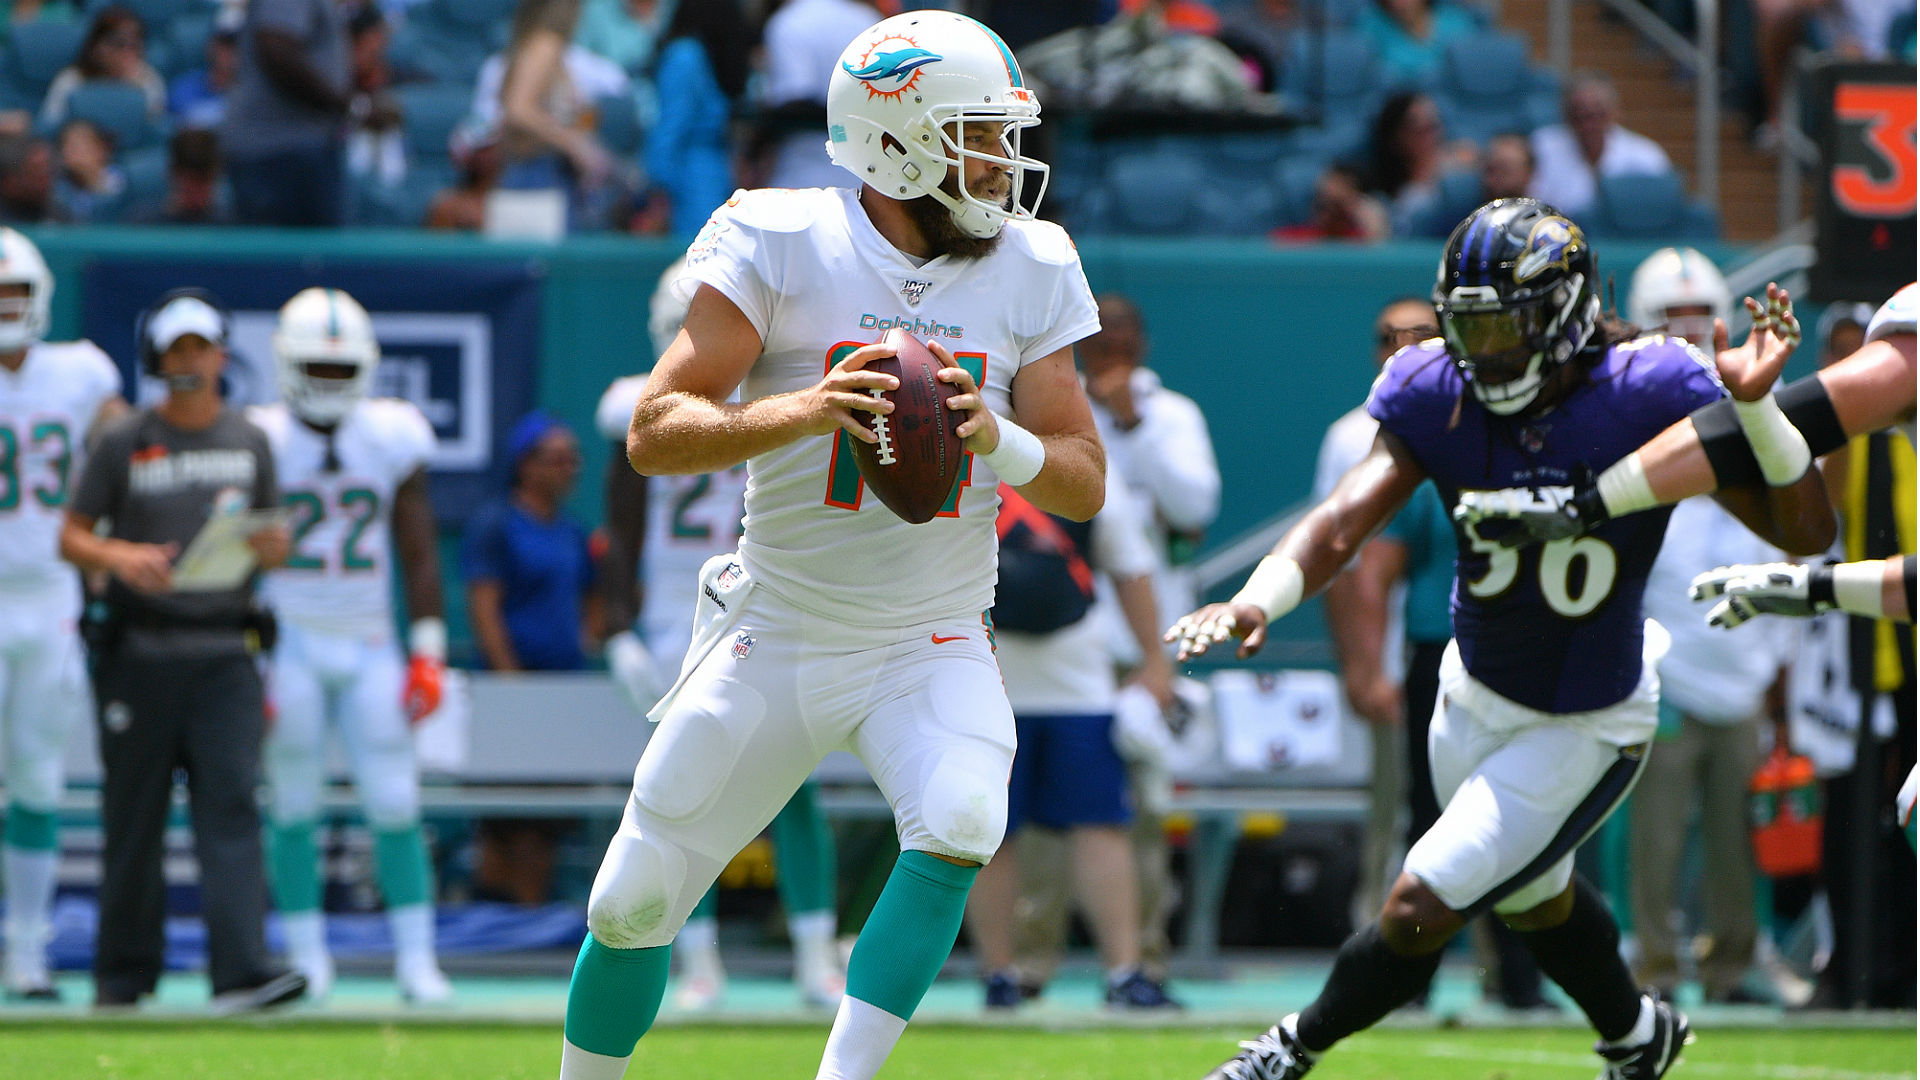 Ryan Fitzpatrick reflected on the Miami Dolphins' big loss to the Baltimore Ravens on Sunday.